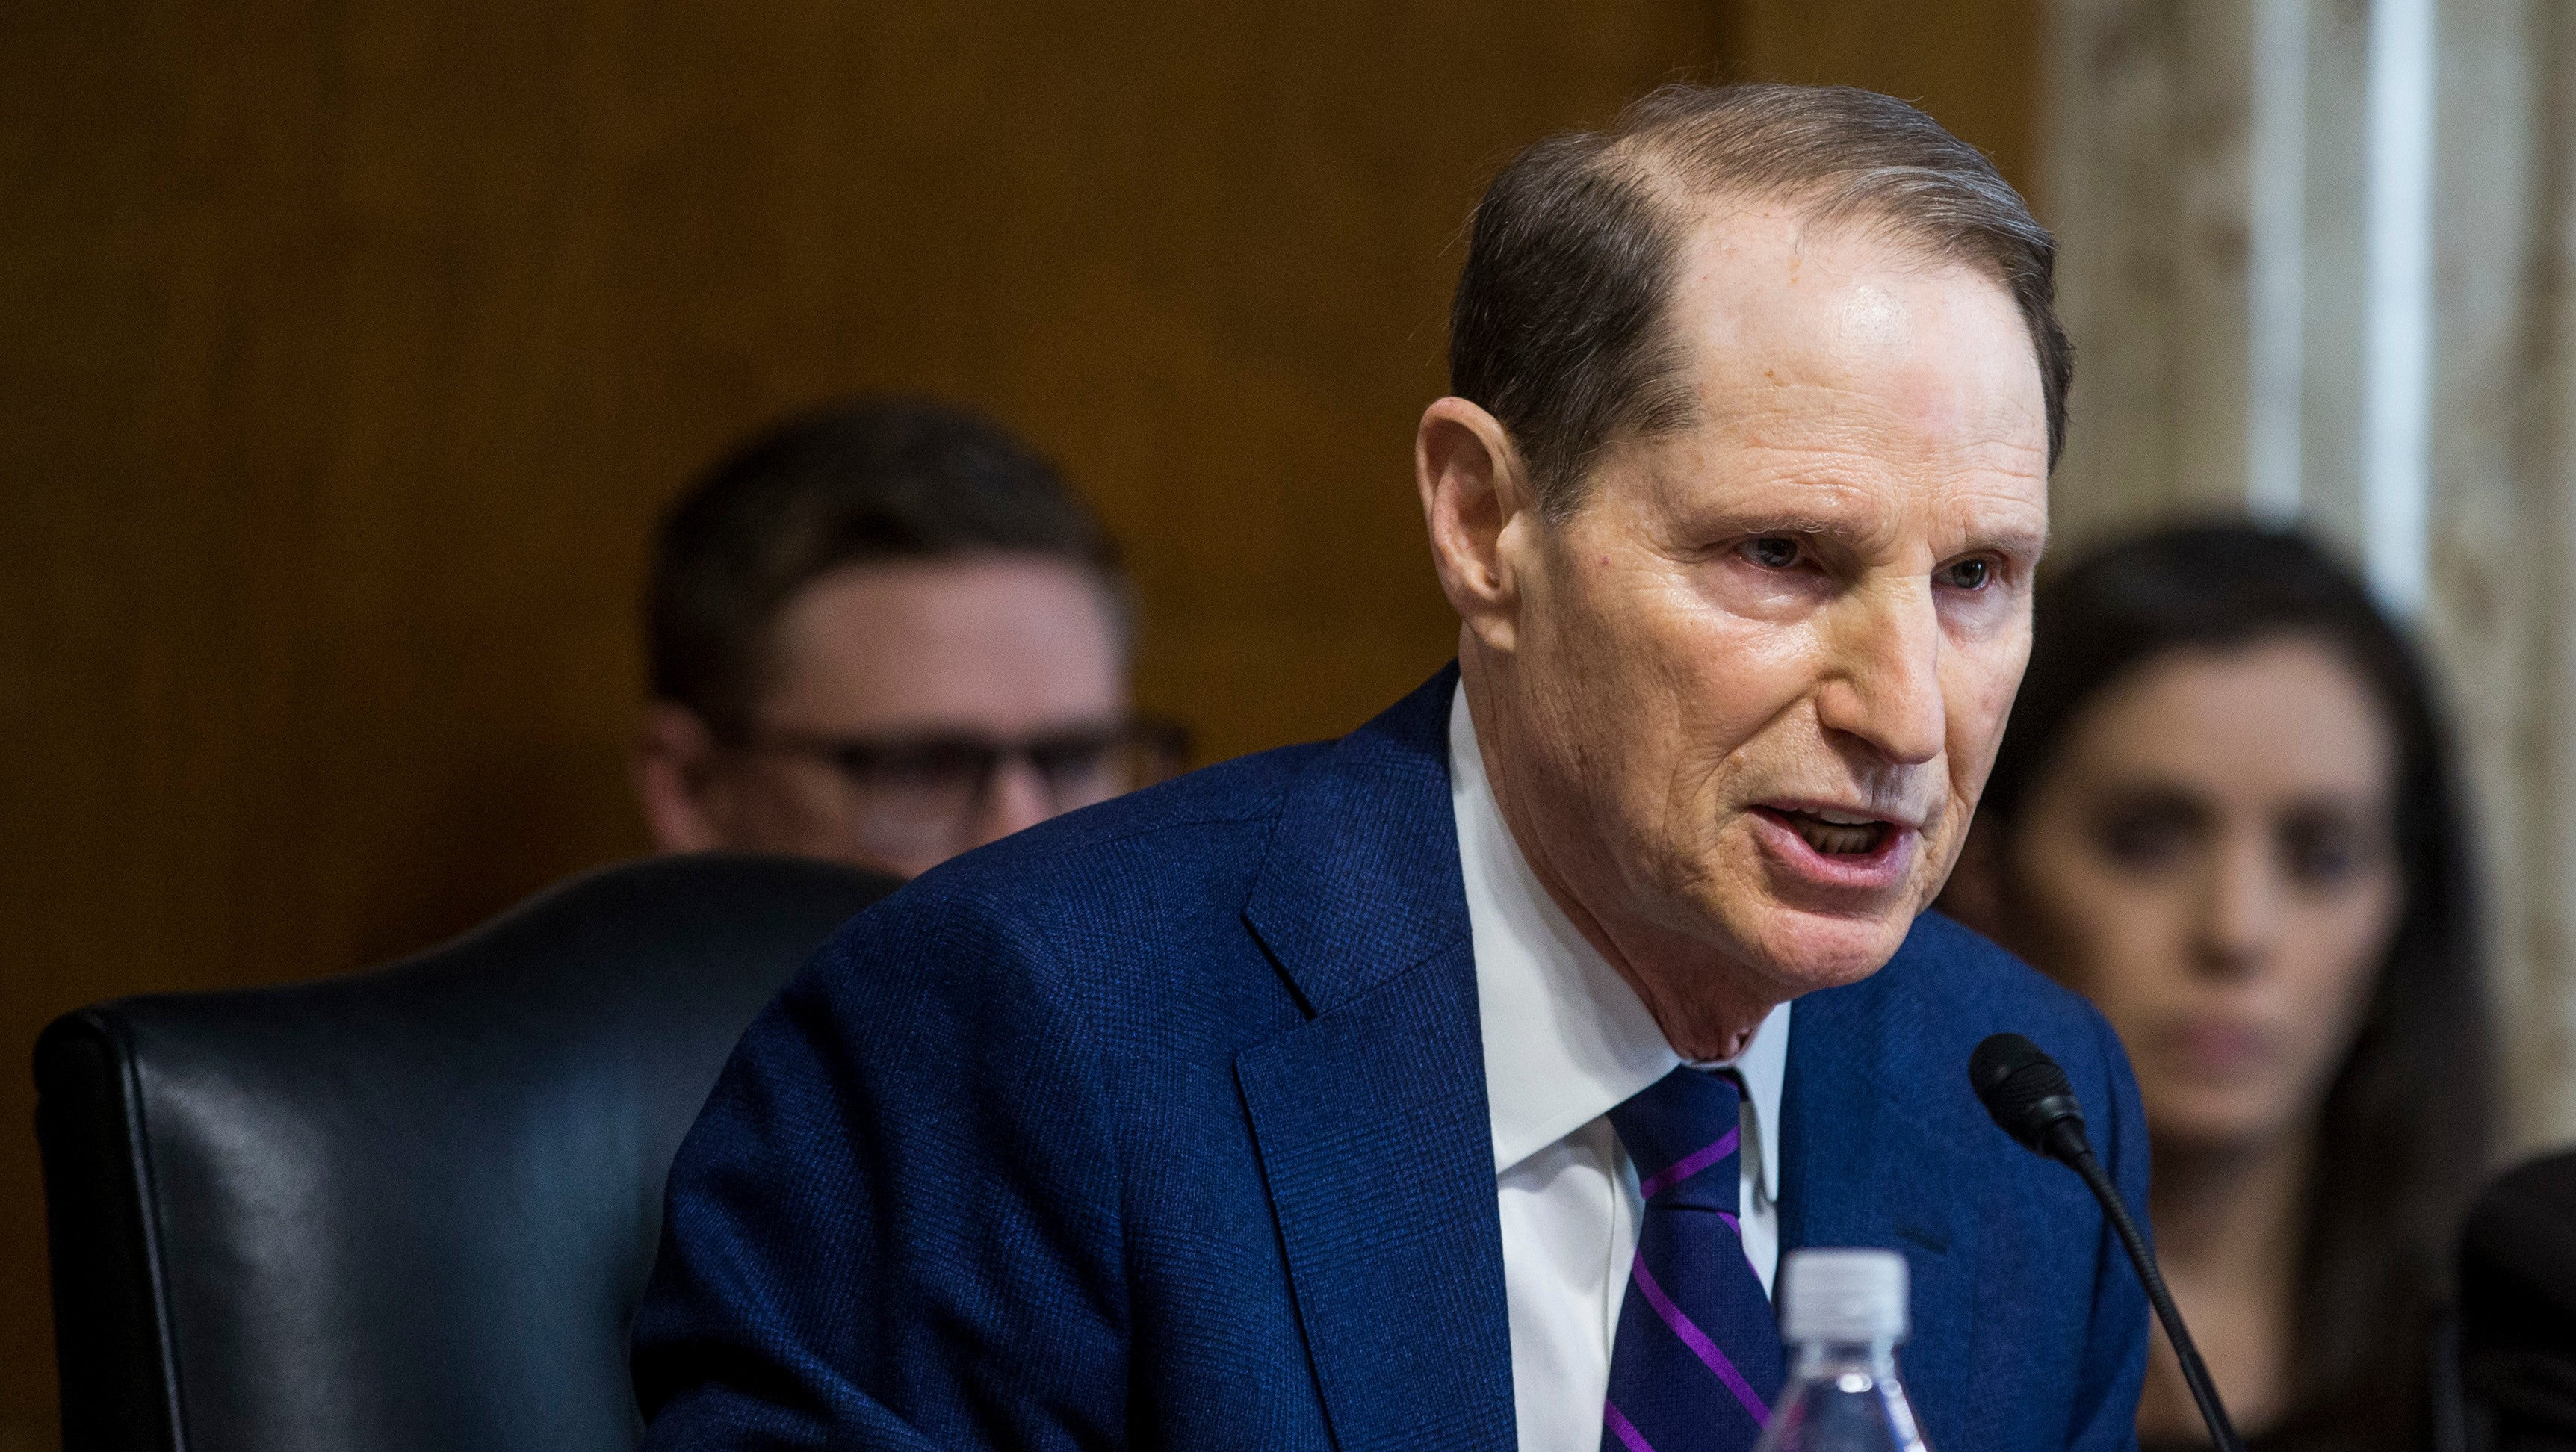 U.S. Senator Warns Facebook's Targeted Ads A 'Sophisticated' Threat To U.S. Elections